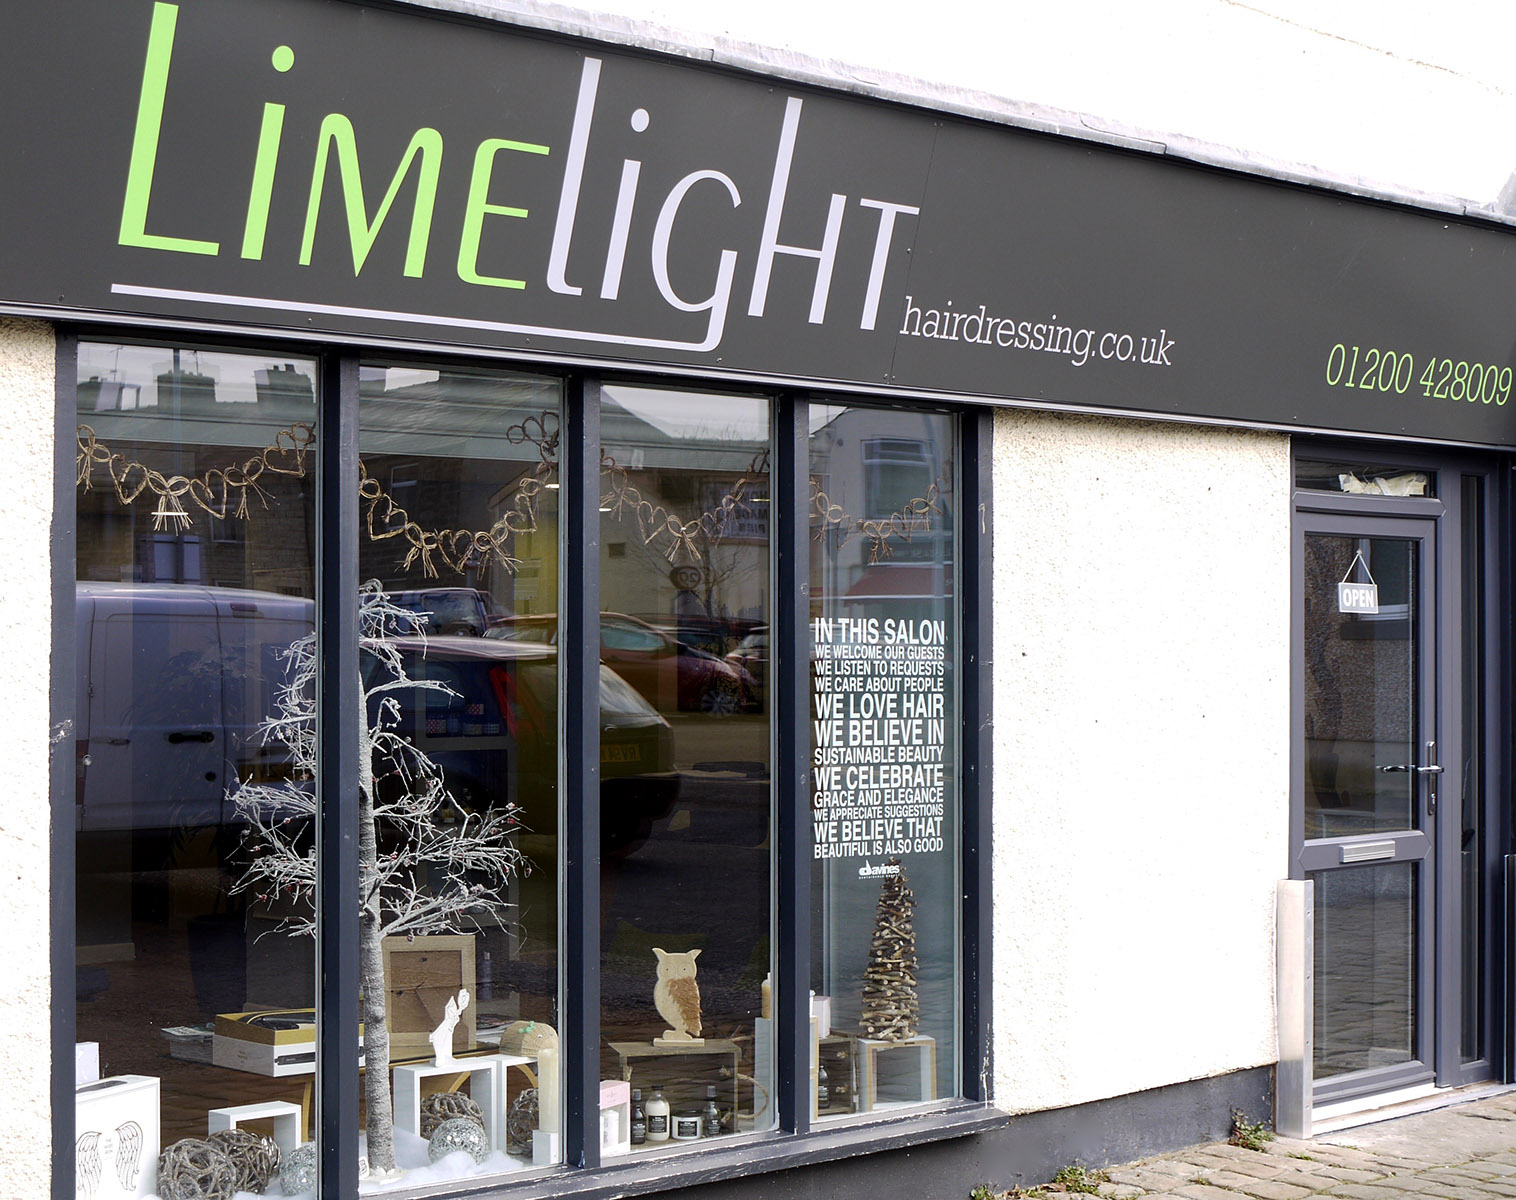 Fashion Valley Beauty Salon: Limelight Hairdressing Clitheroe